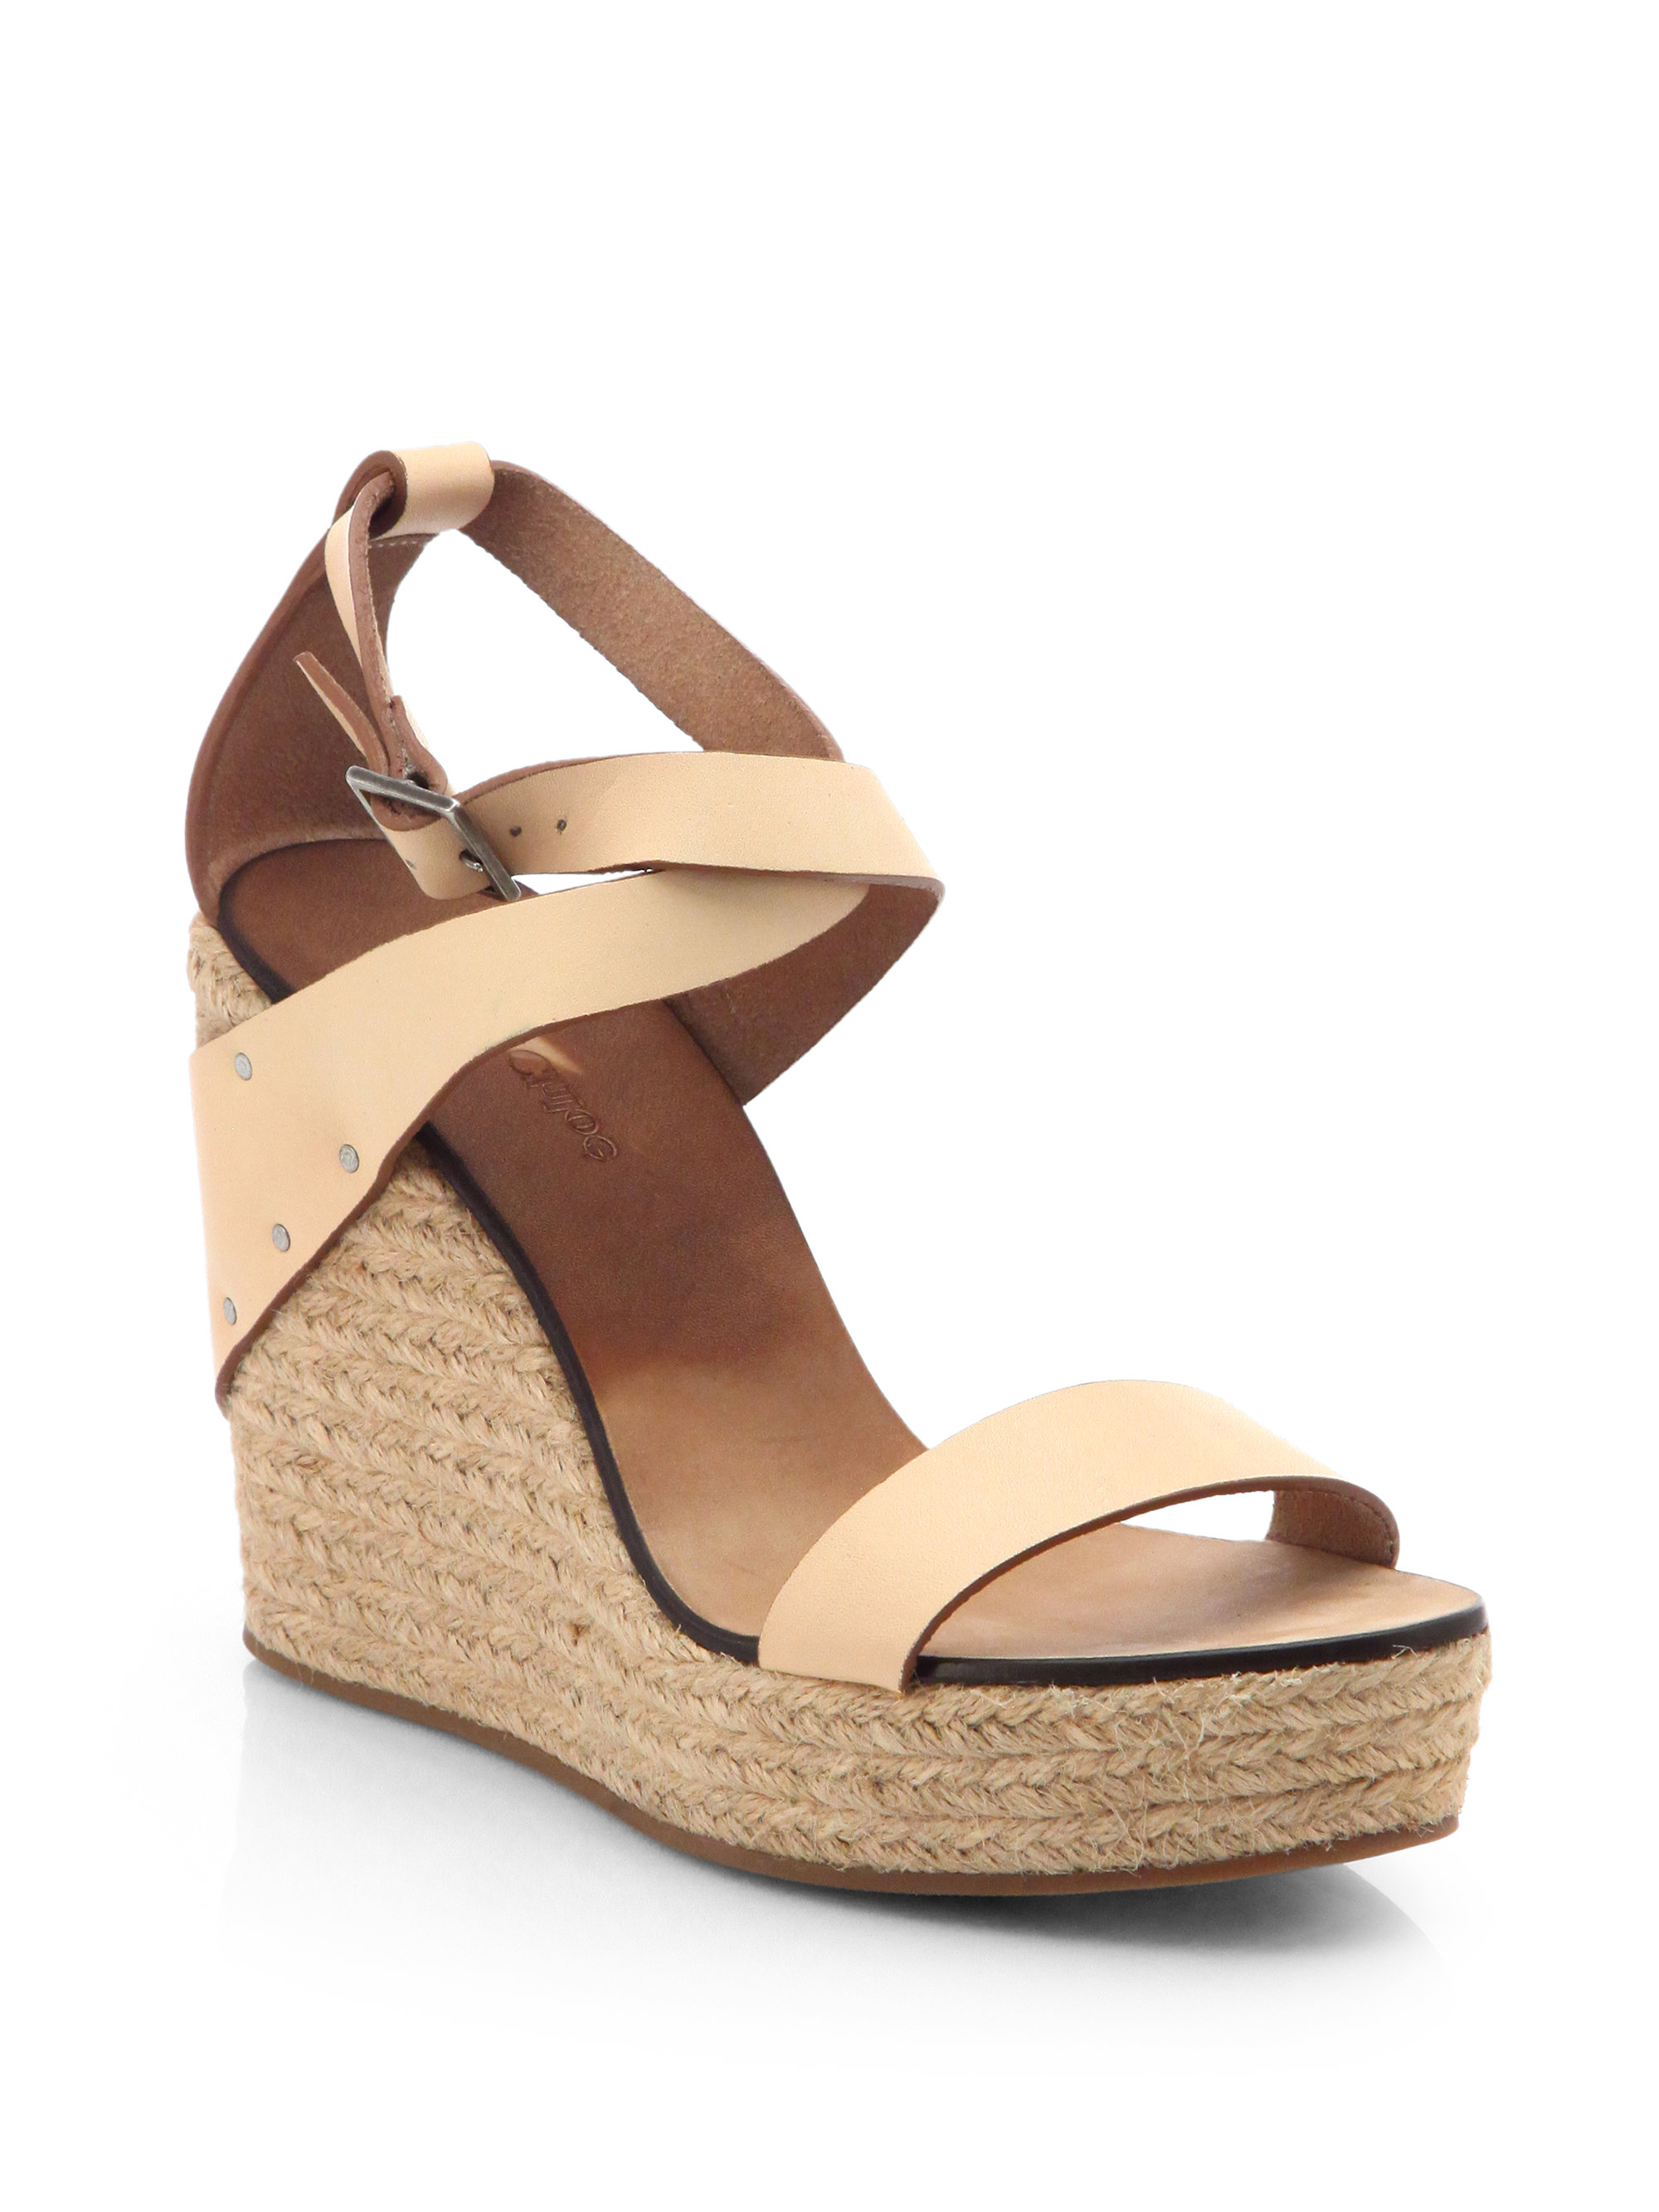 7519cfa6533b Lyst - See By Chloé Leather Espadrille Wedge Sandals in Natural